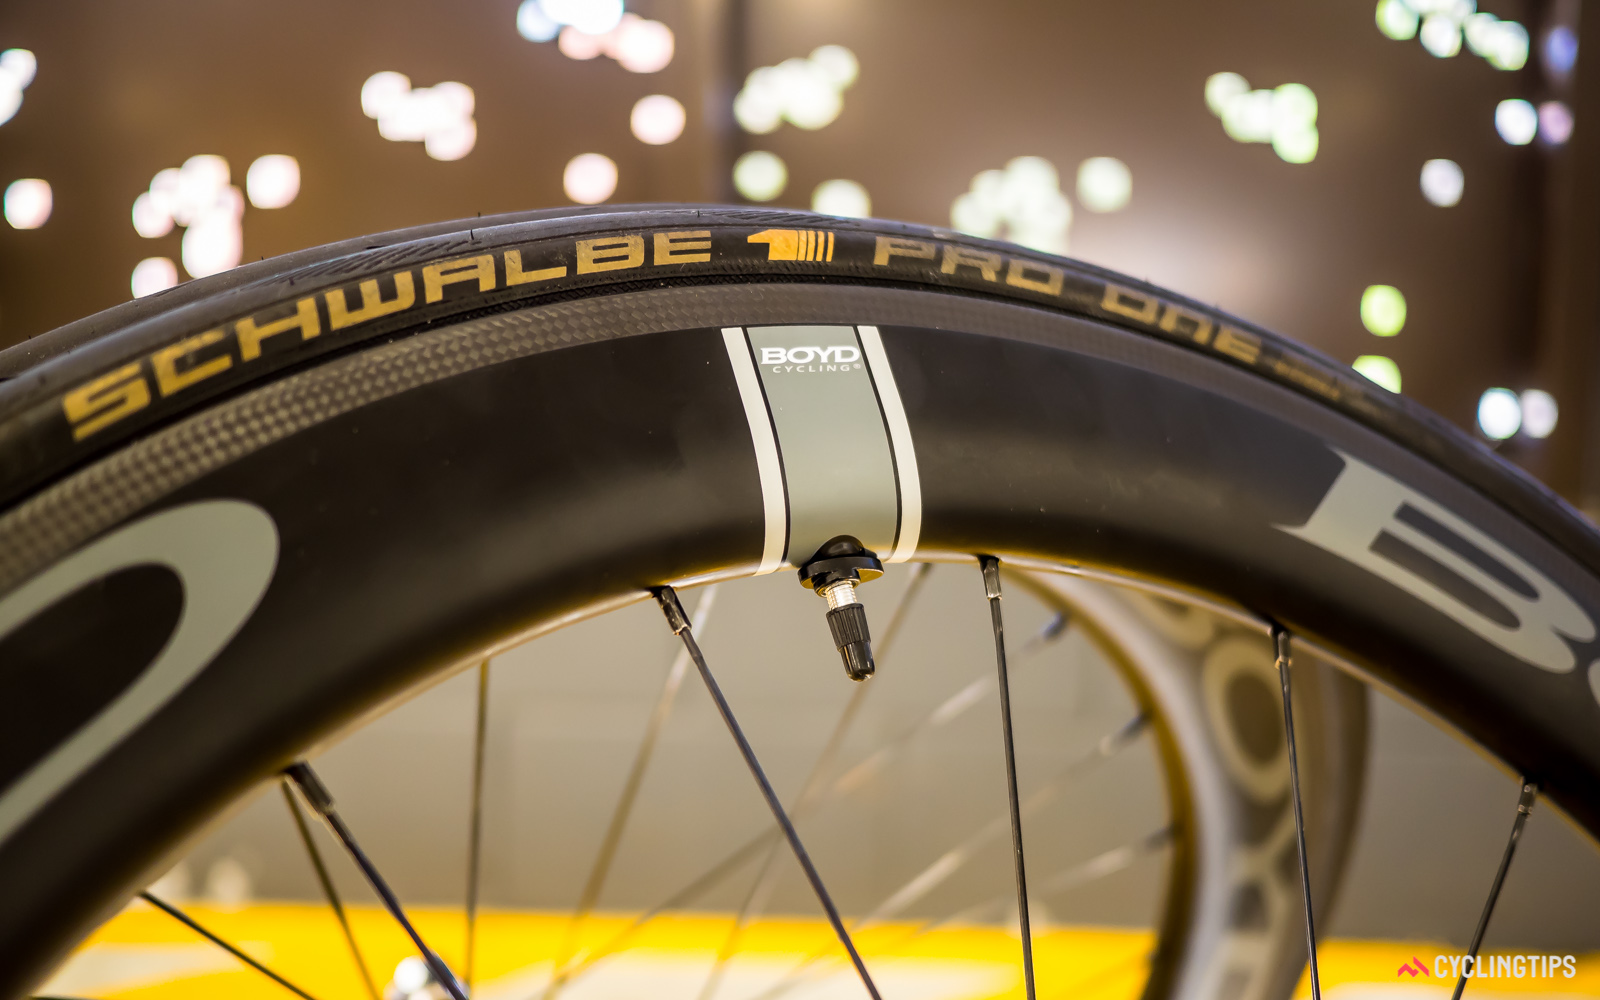 Boyd Cycling can supply its tubeless-compatible clinchers with its own tubeless valves without the need for an extension. The ovalised locknut makes it easy to tighten and loosen it by hand.